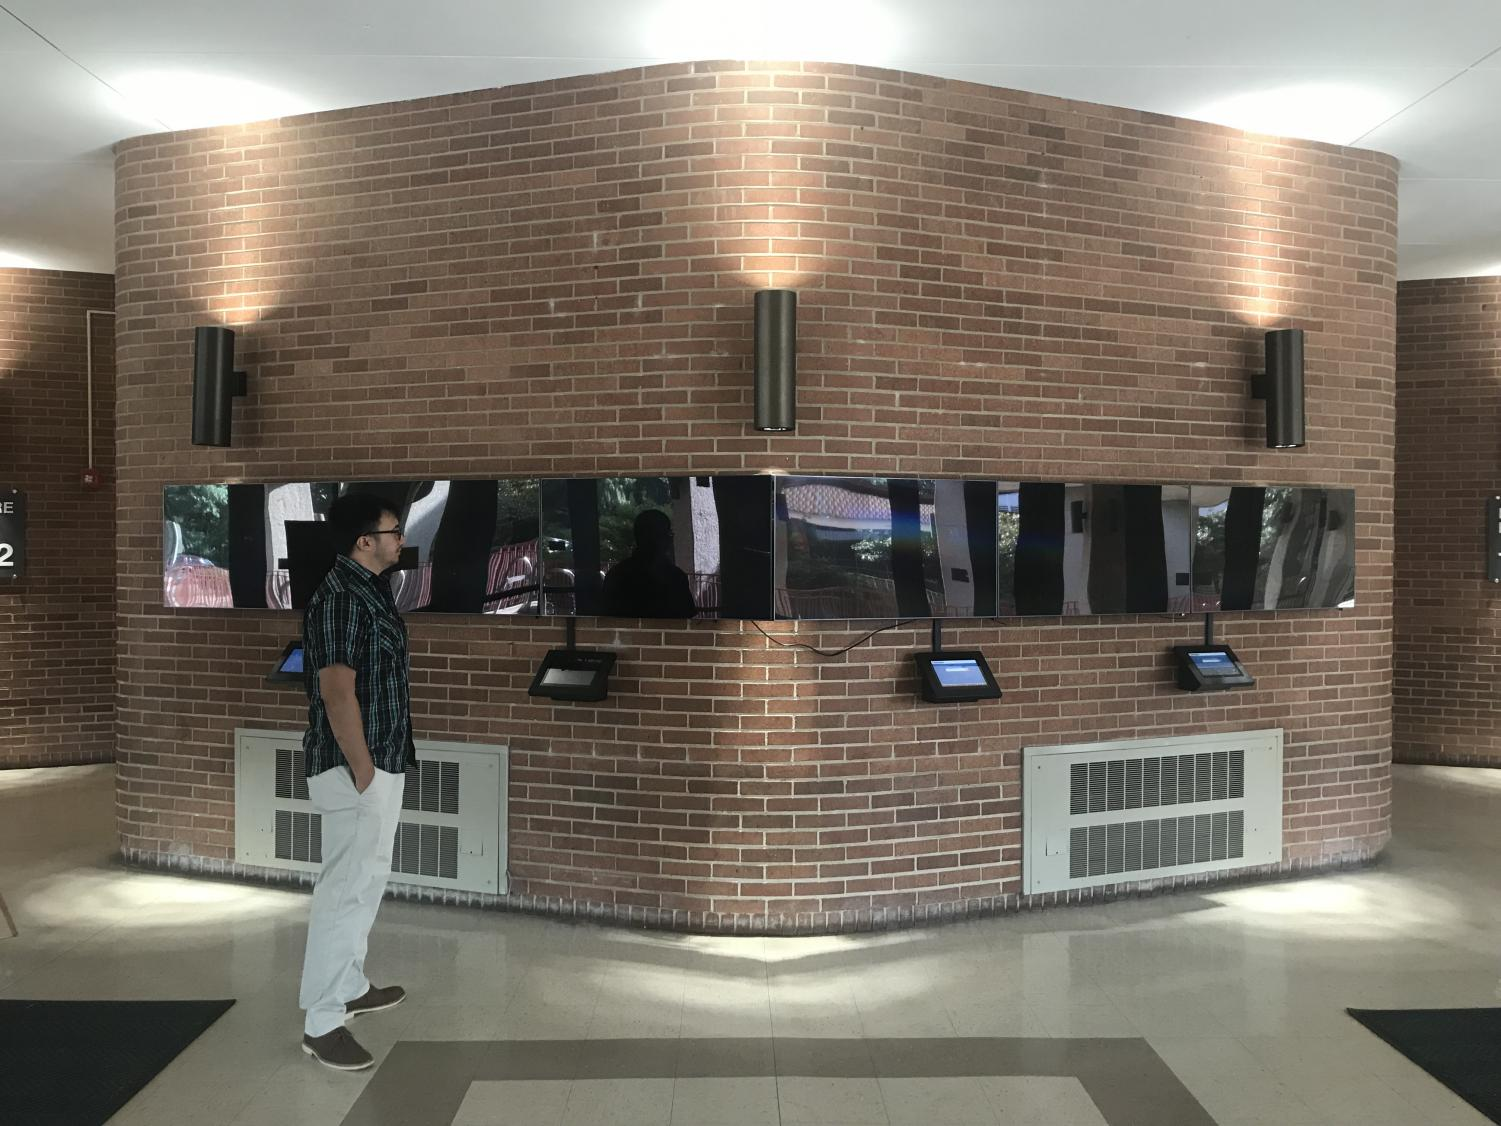 NEIU student Patrick Mercader stares at the pitch-black screens in Lech Walesa Hall. The screens were used to showcase the artwork from NEIU students and faculty protesting Lech Walesa's name after Walesa said homophobic comments.